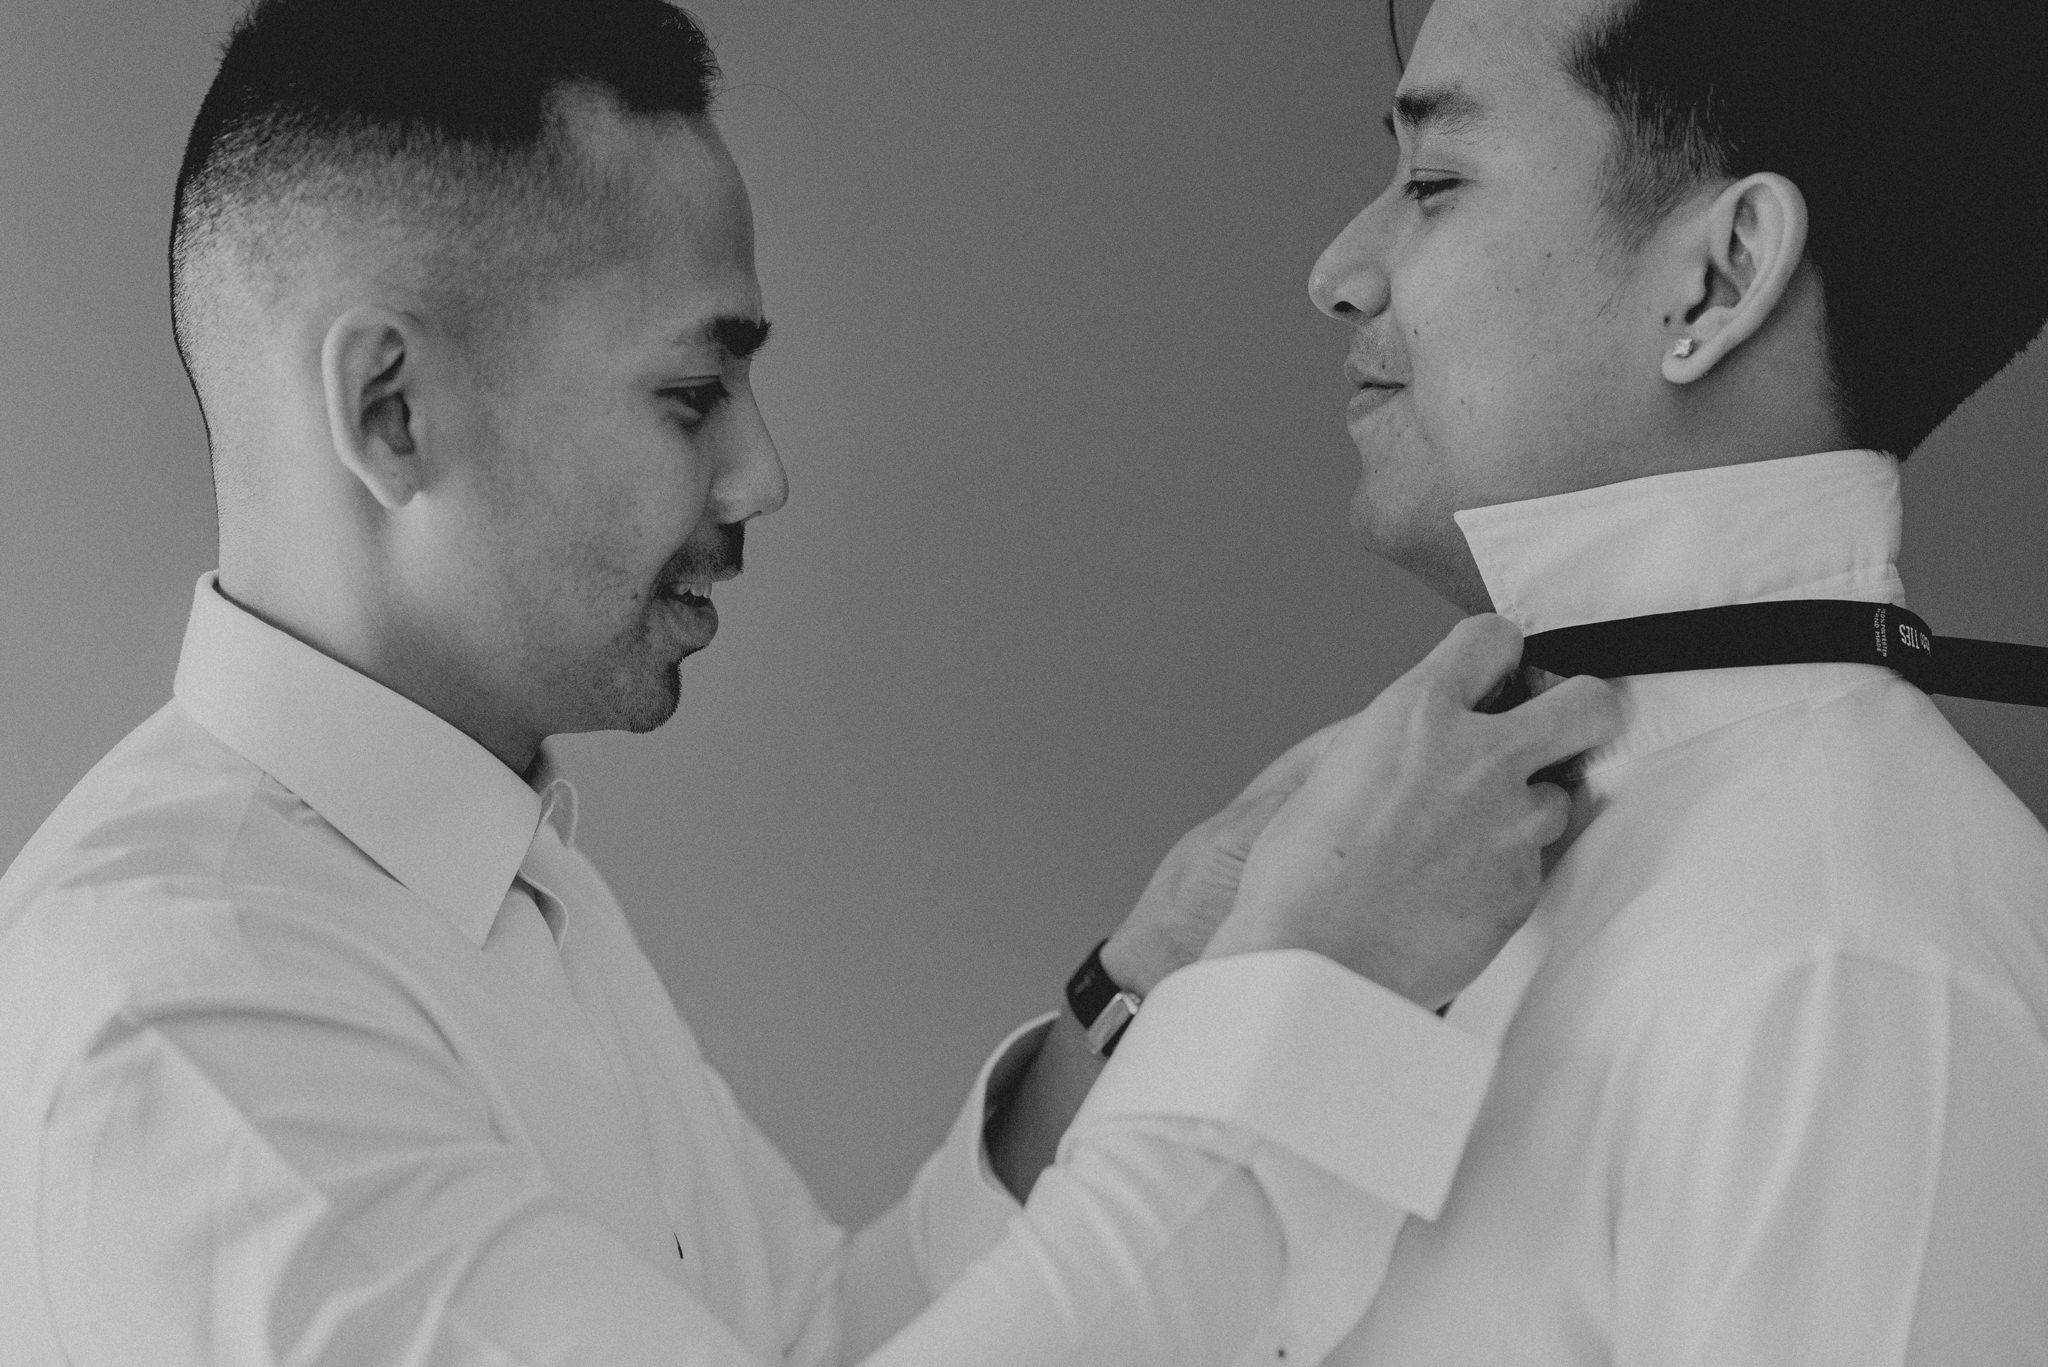 One man helps another man tie his bow-tie